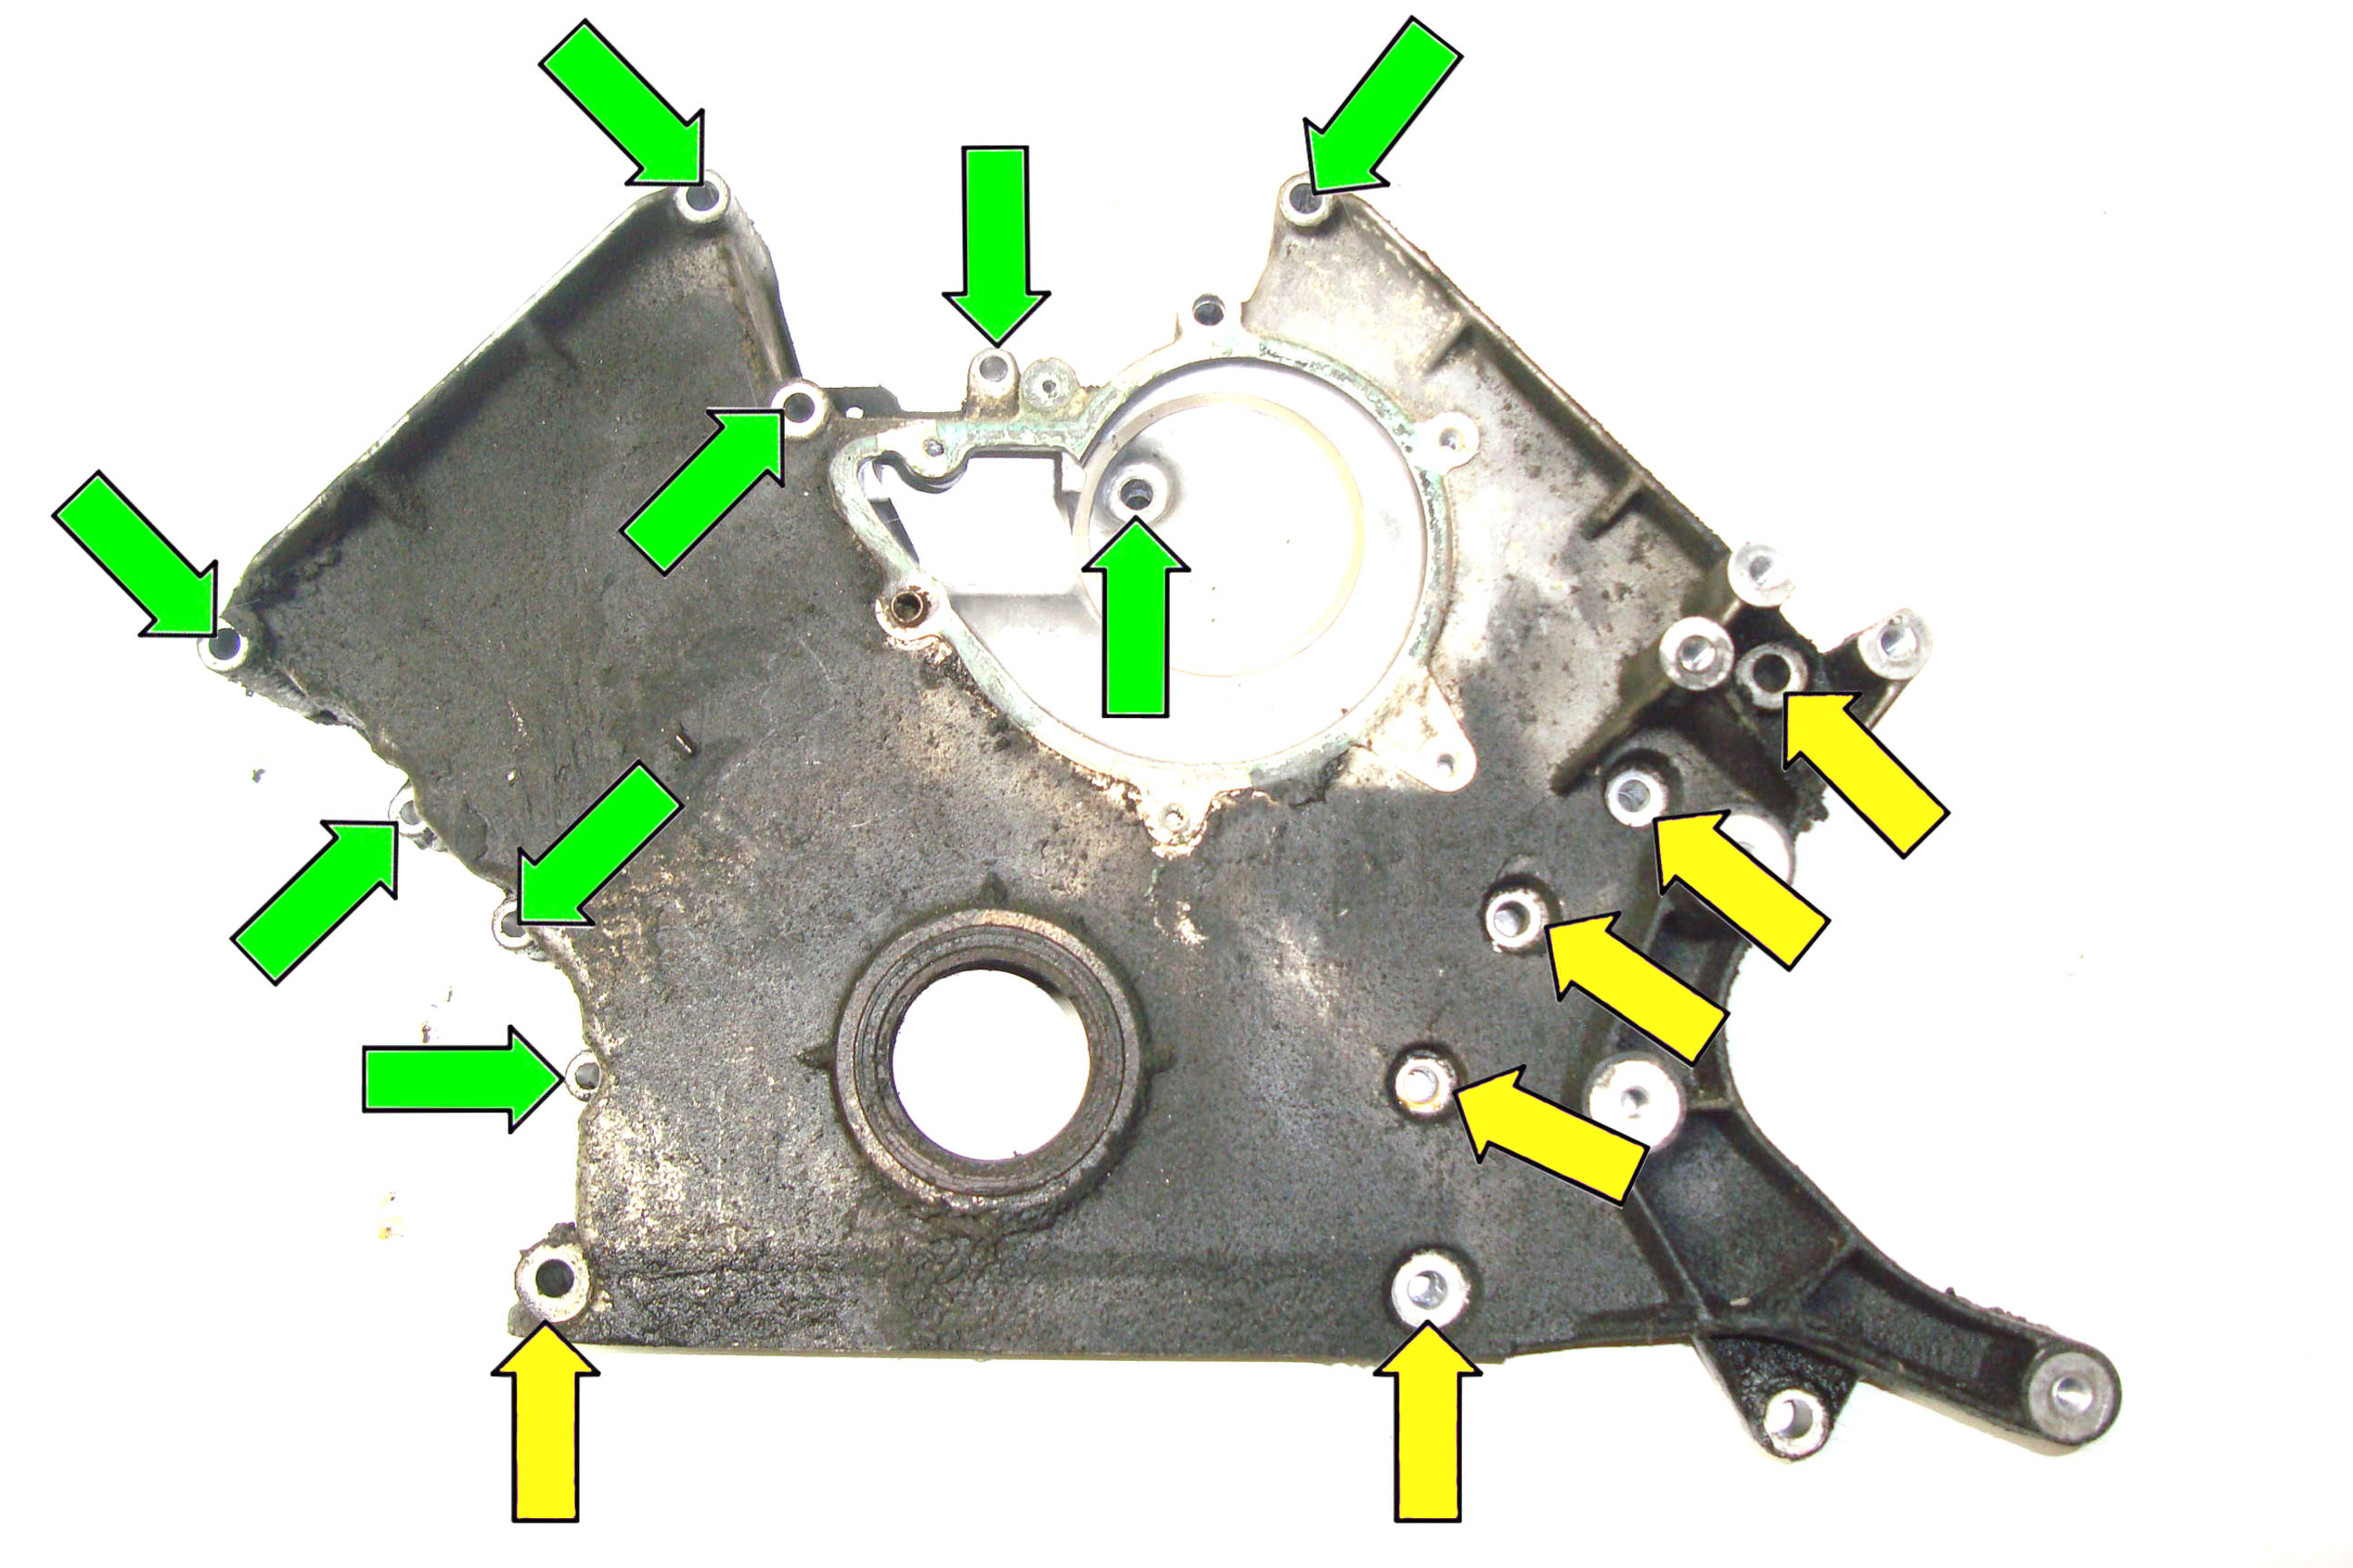 BMW E39 5-Series Timing Chain Guides Removal | 1997-2003